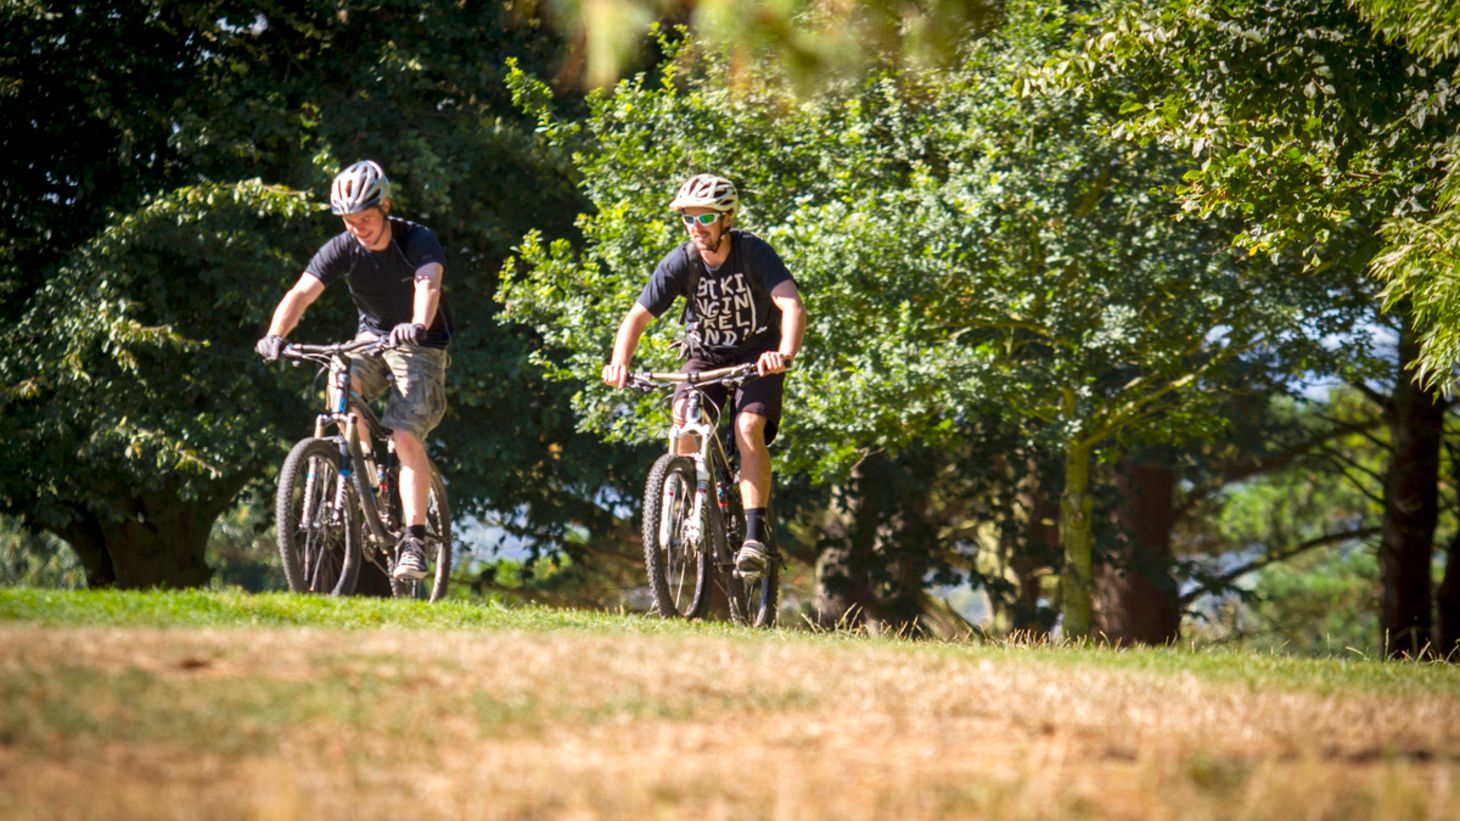 Experience the thrill of mountain biking.